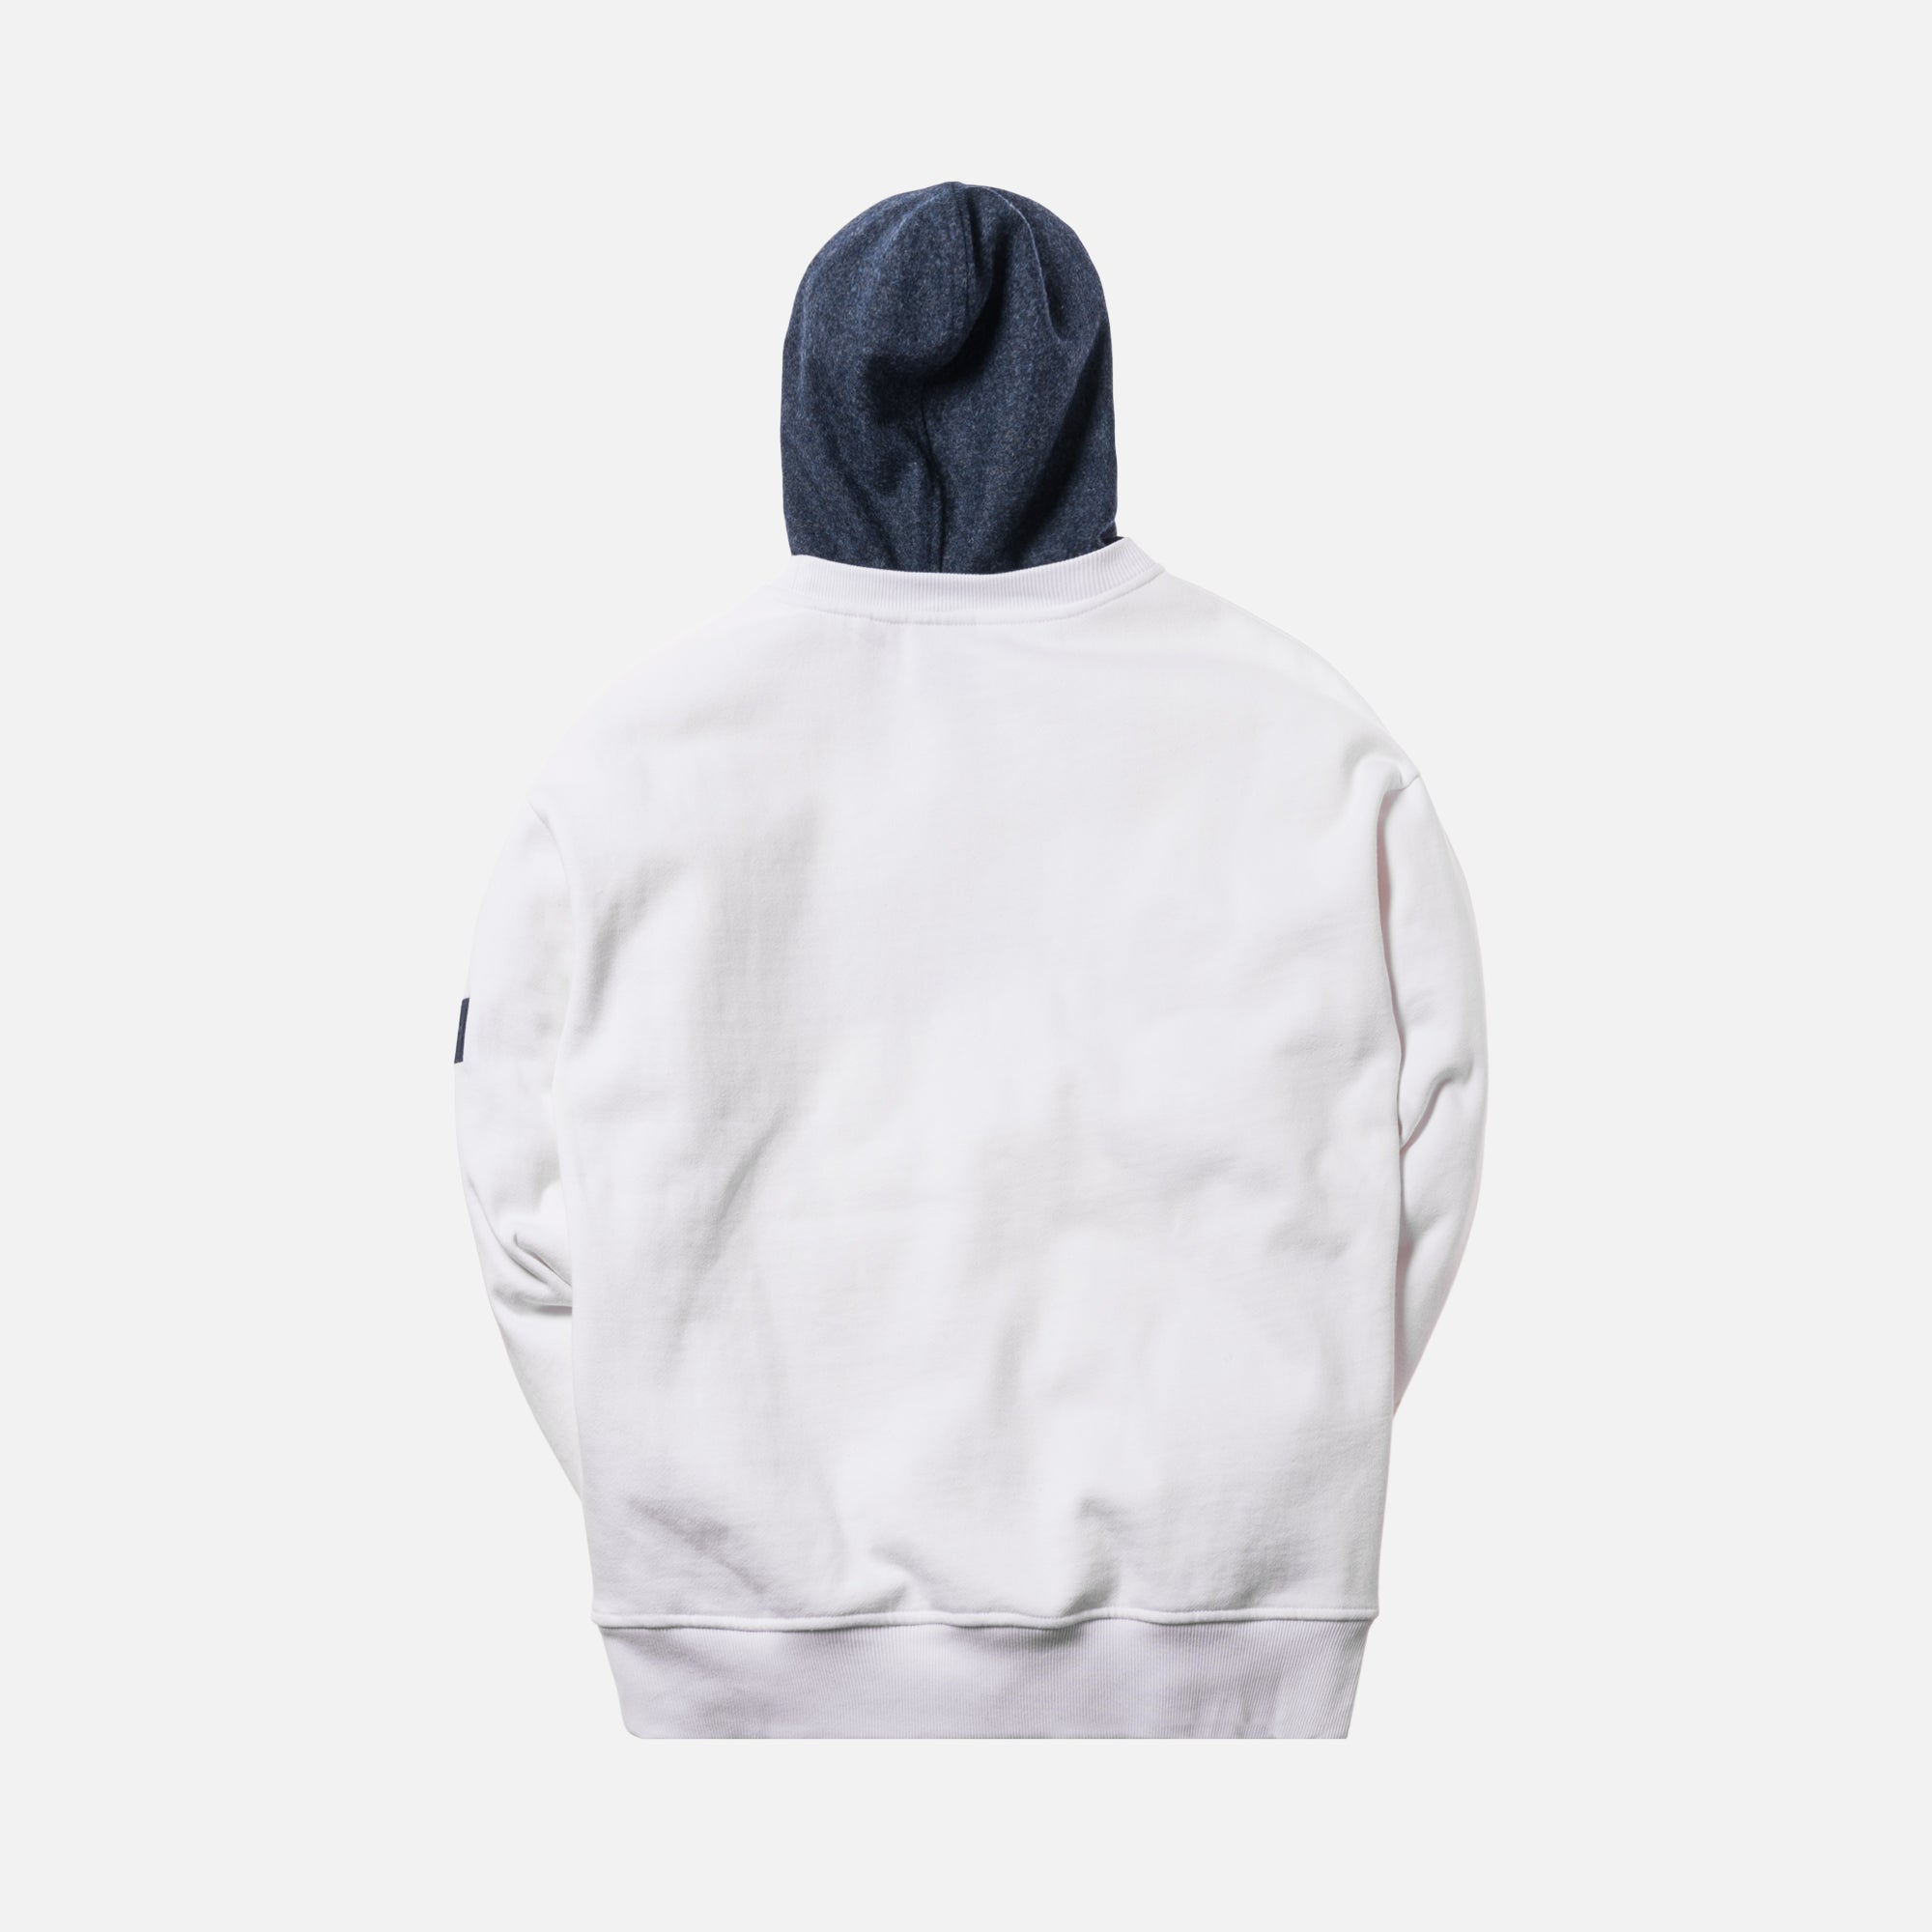 Kith x Bergdorf Goodman Interlock Williams 2 Hoodie - White